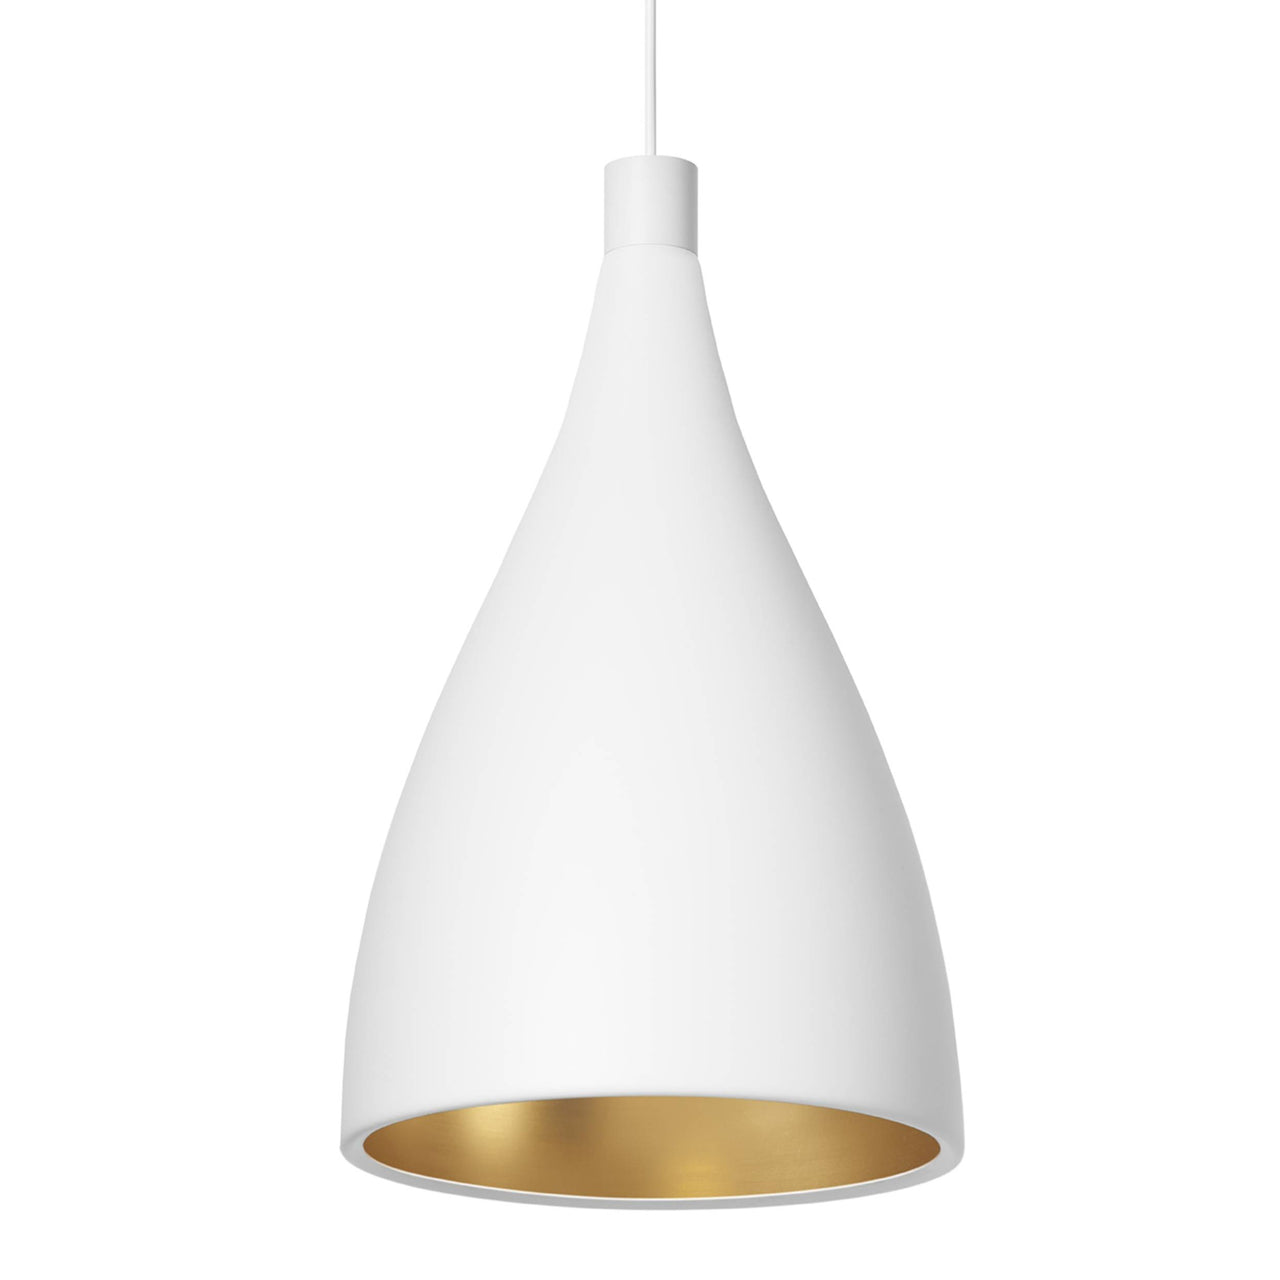 Swell Single Indoor/Outdoor Pendant Light: XL Narrow + White + Brass